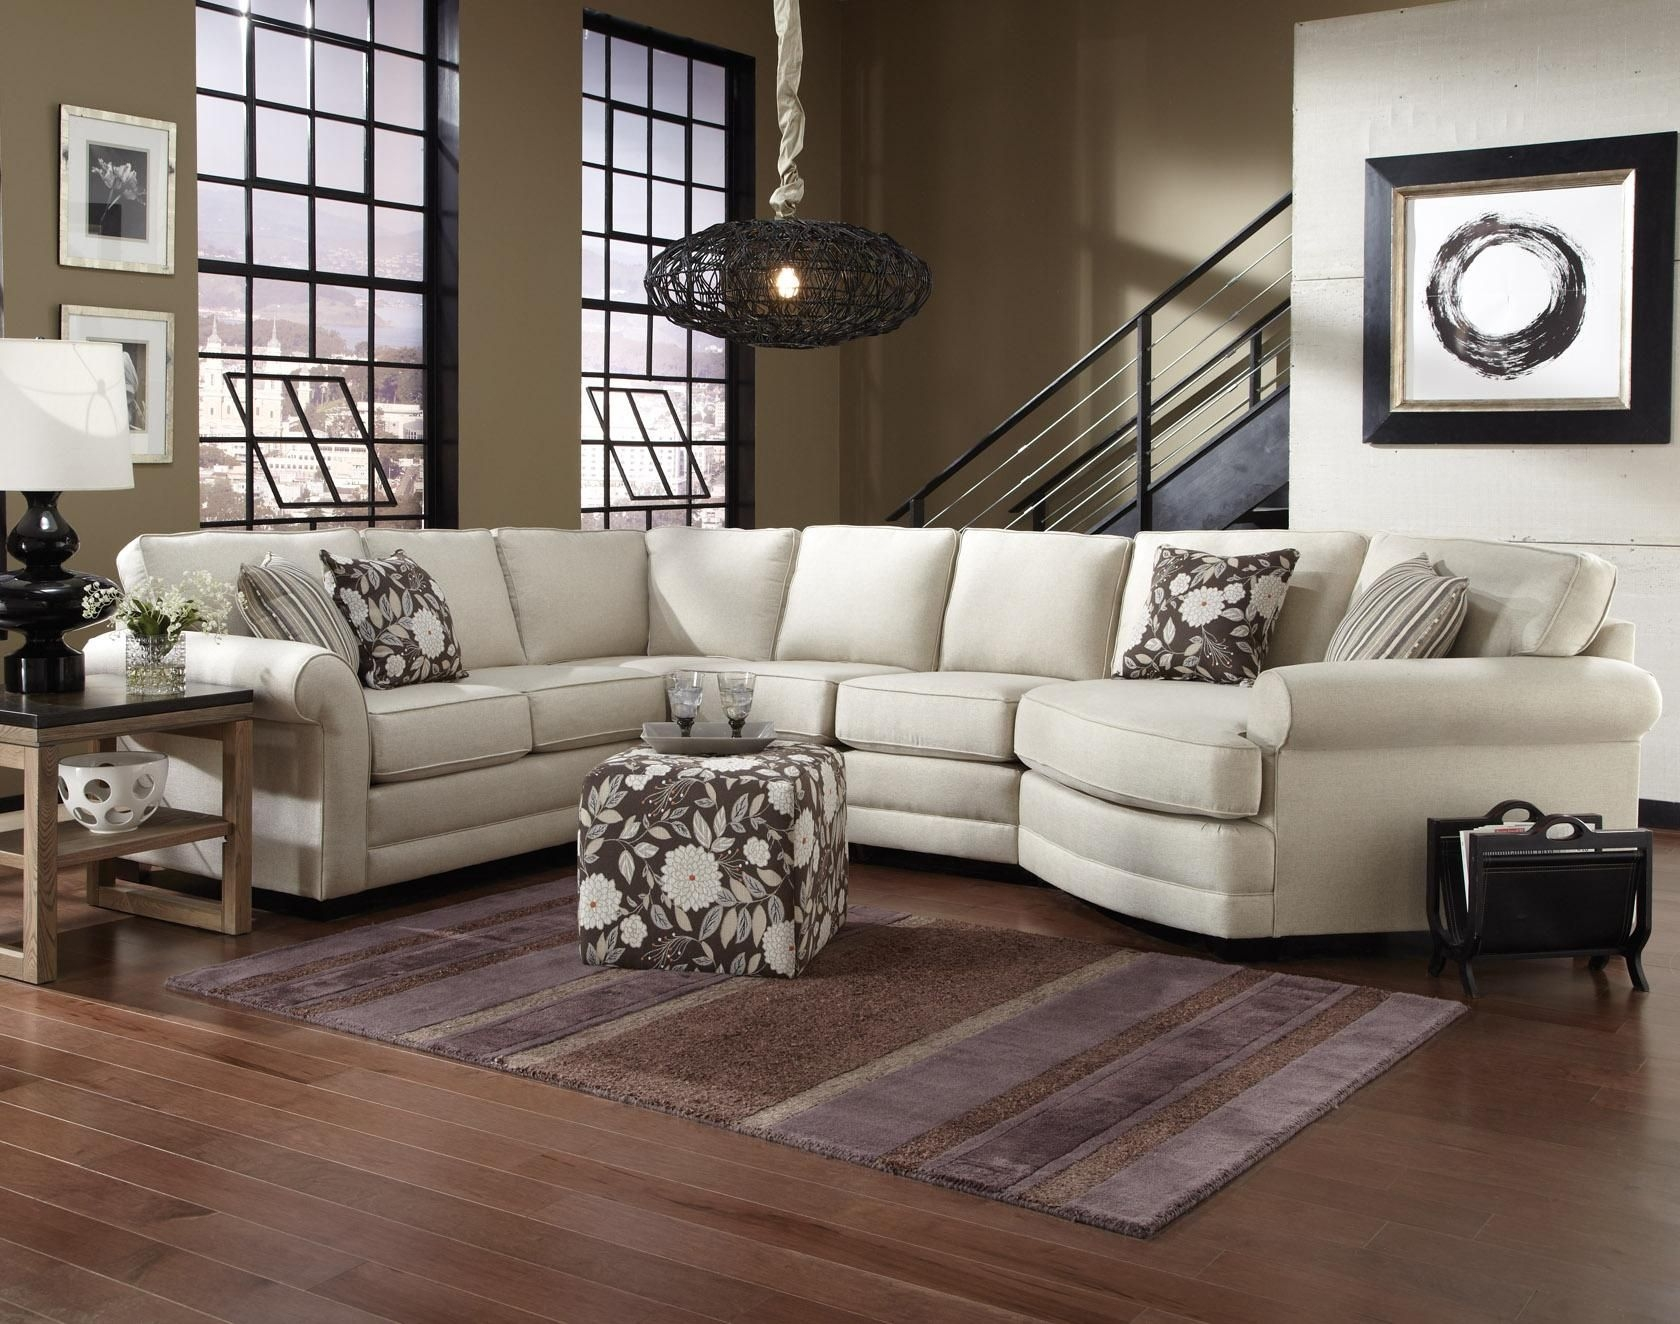 England Brantley 5 Seat Sectional Sofa With Cuddler  Dunk  Bright Furniture  Sectional Sofas